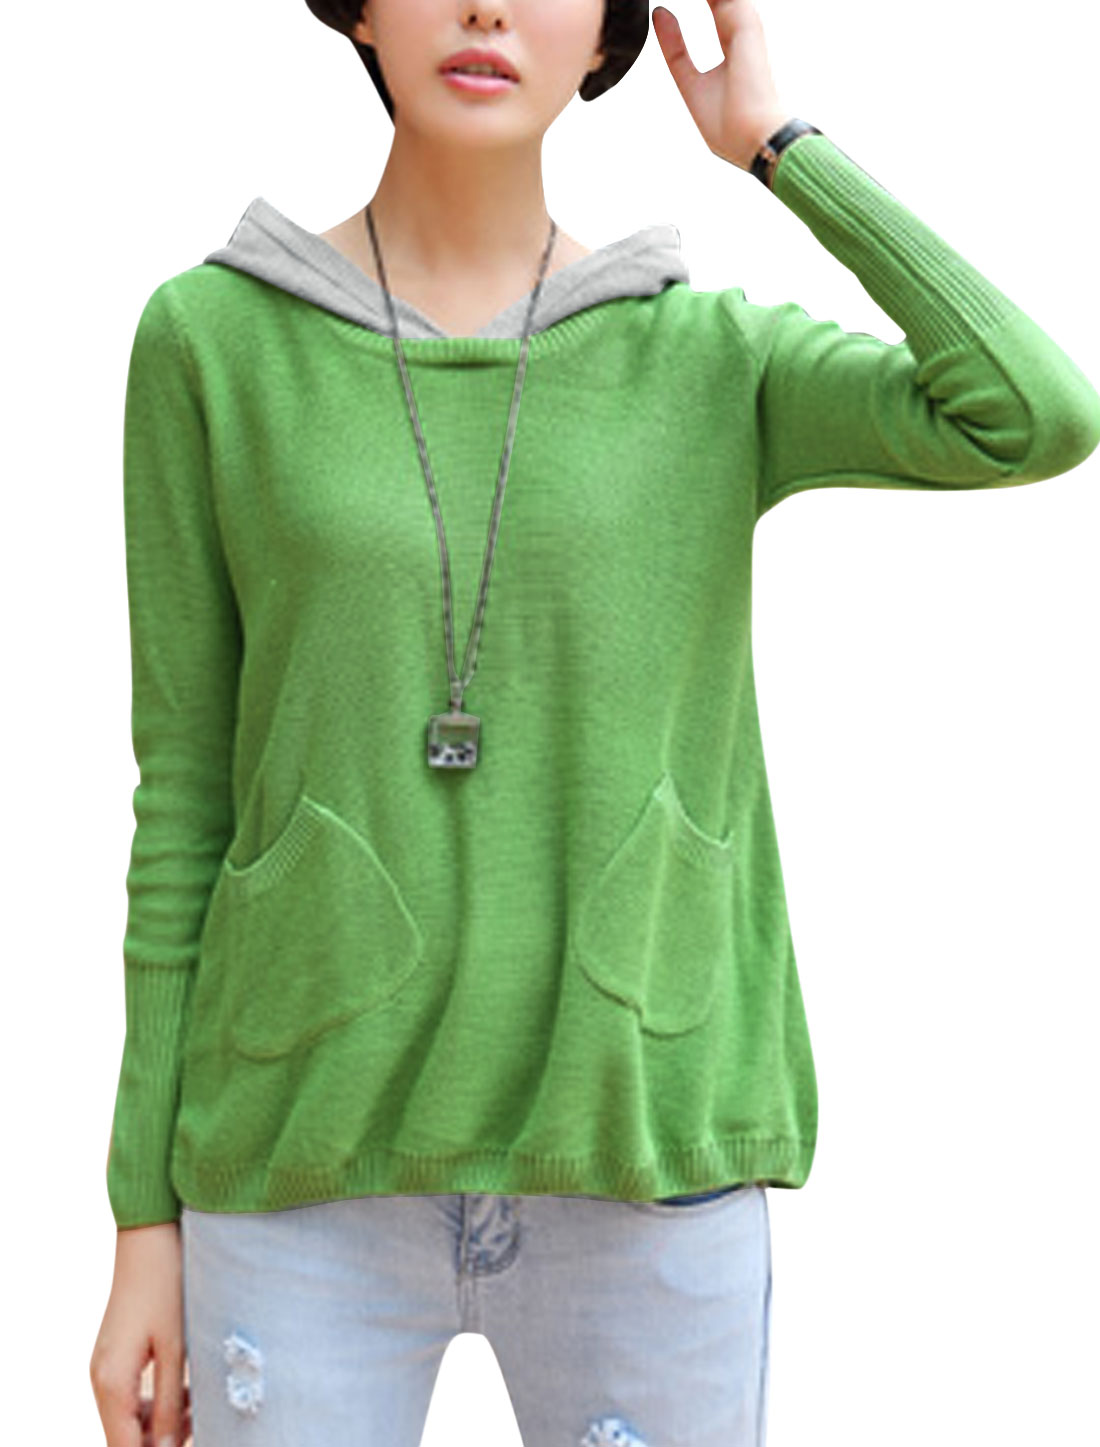 Cozy Fit Leisure Button Decor Back Hooded Sweater for Lady Light Green S